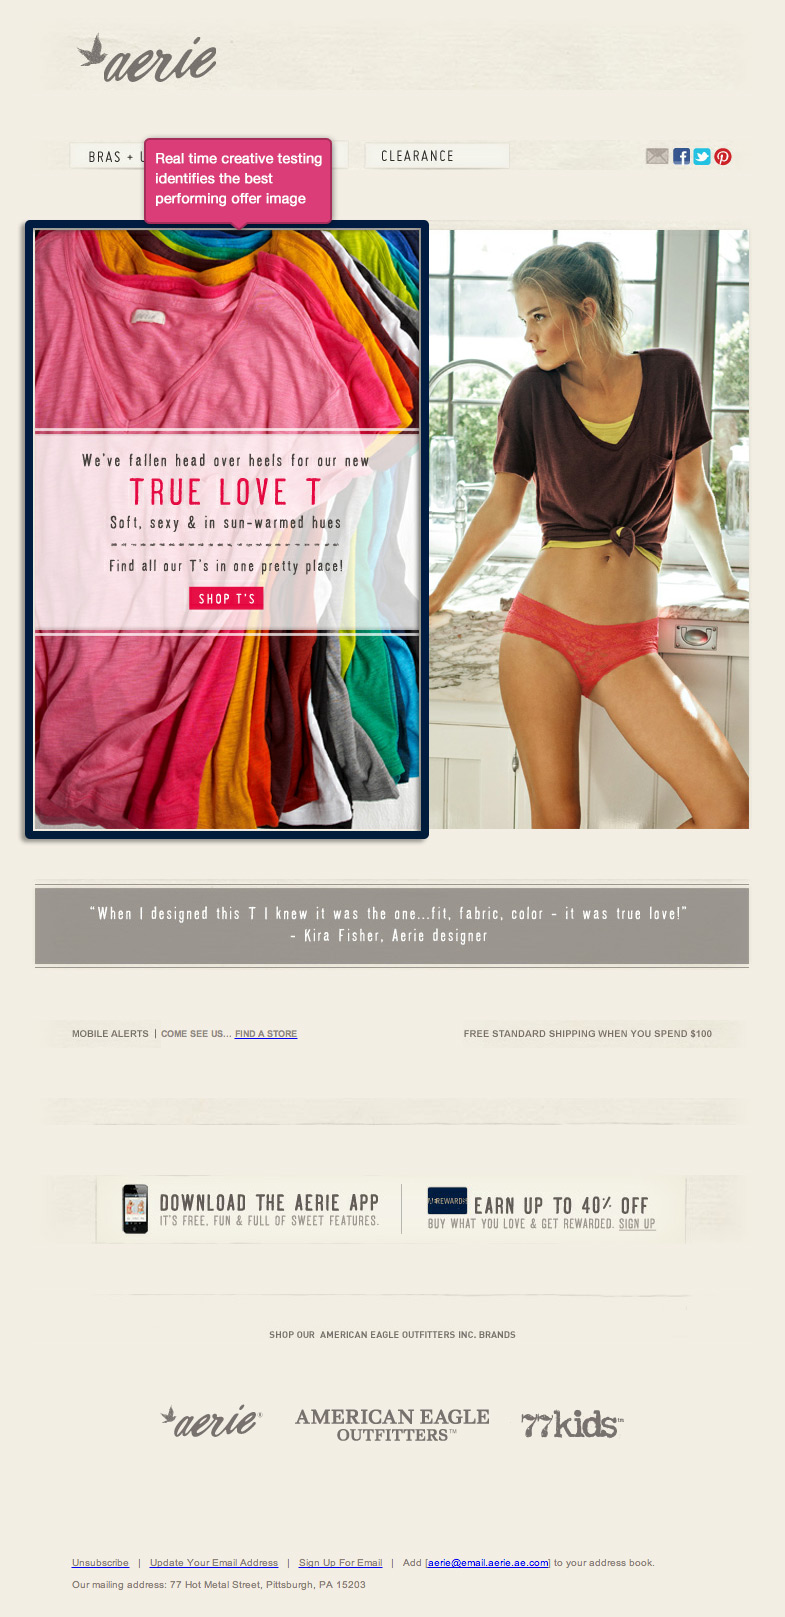 American-eagle-aerie-true-love-t